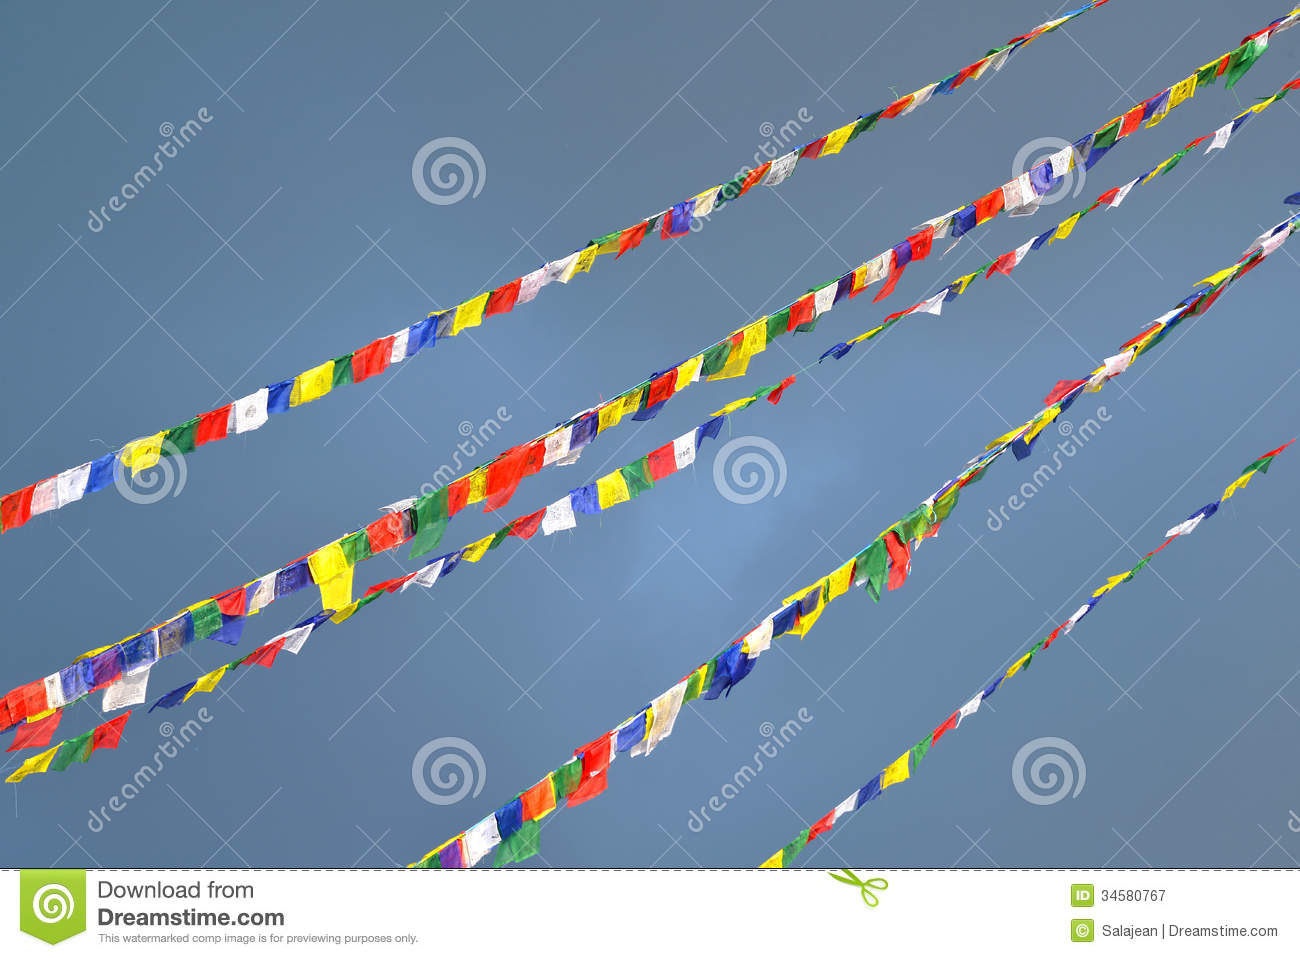 Tibetan prayer flags clipart.